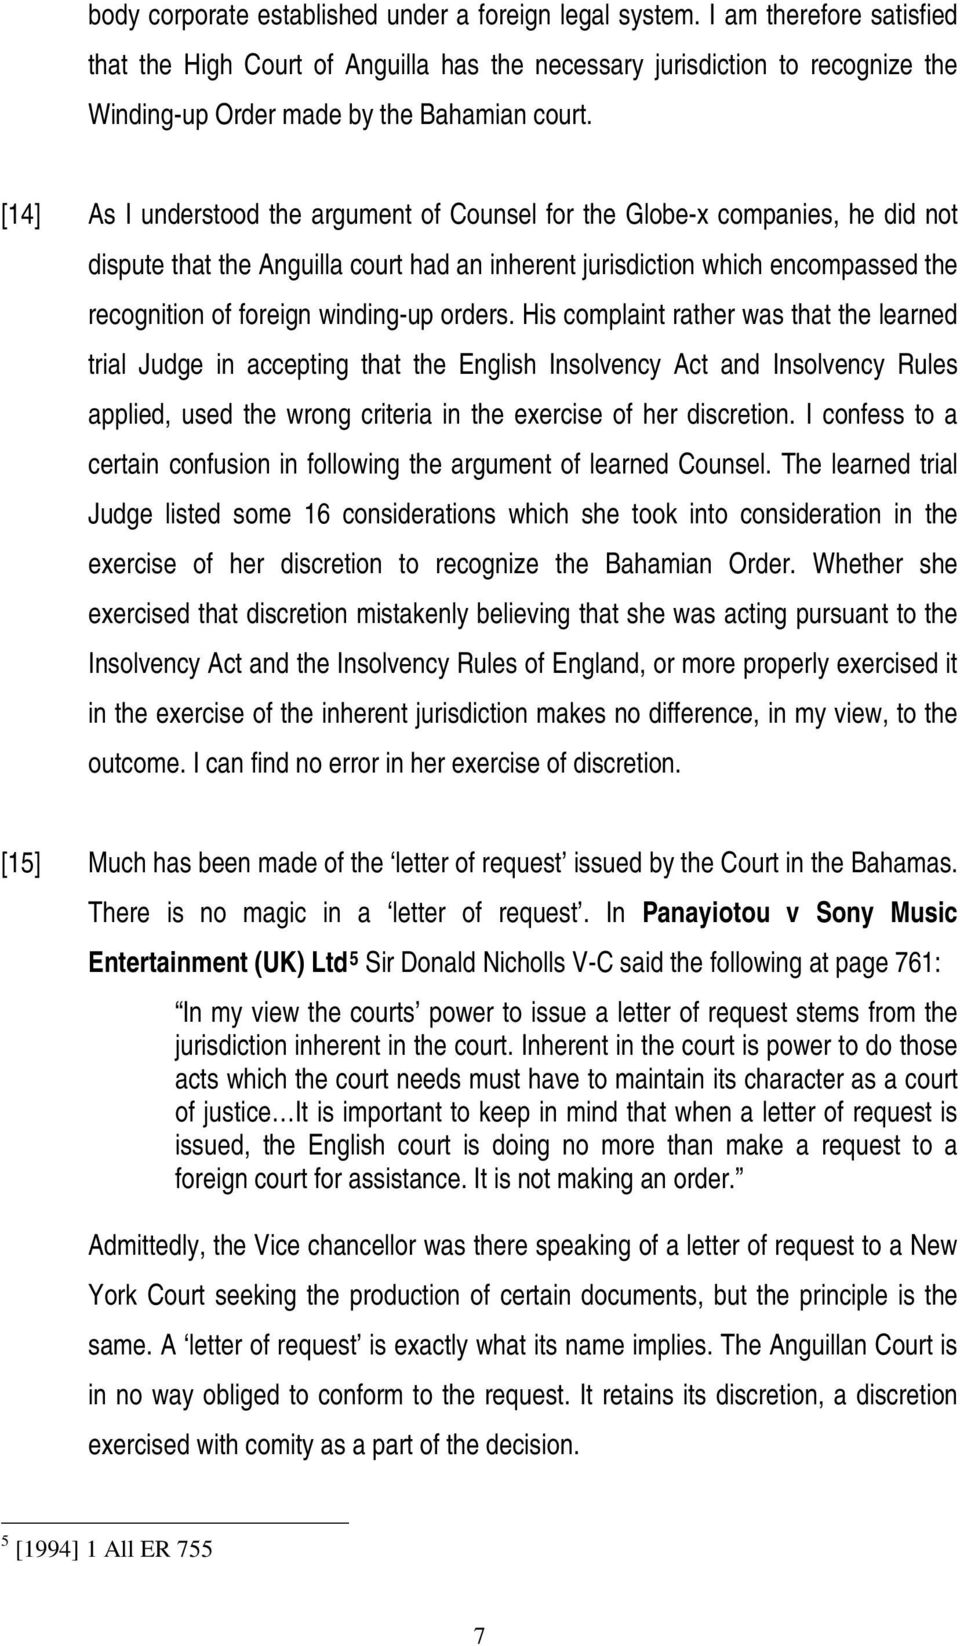 [14] As I understood the argument of Counsel for the Globe-x companies, he did not dispute that the Anguilla court had an inherent jurisdiction which encompassed the recognition of foreign winding-up